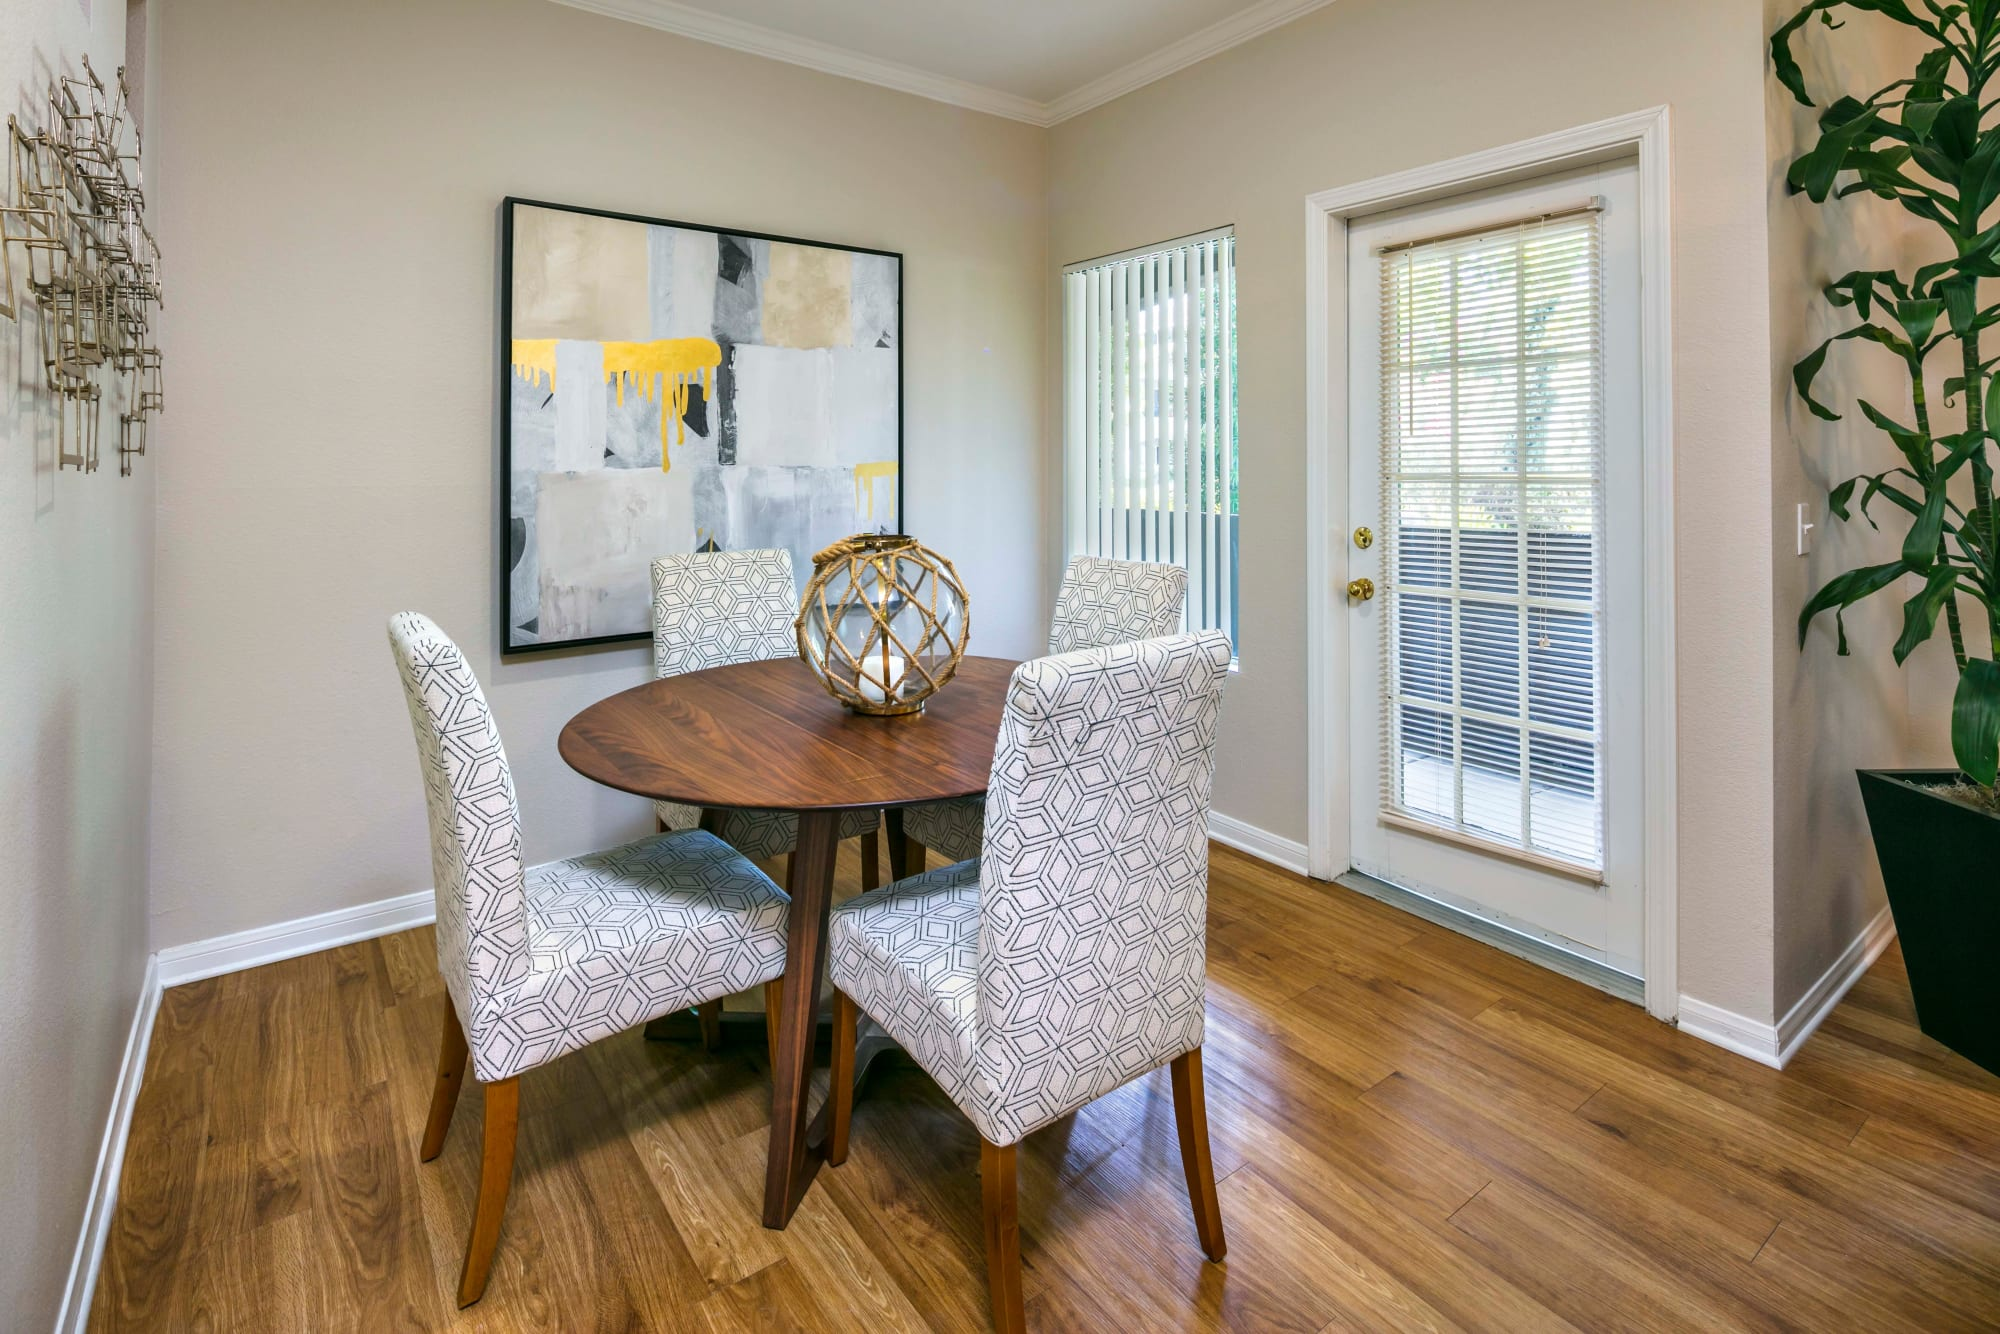 Dining space with dining table at Miramonte and Trovas in Sacramento, California